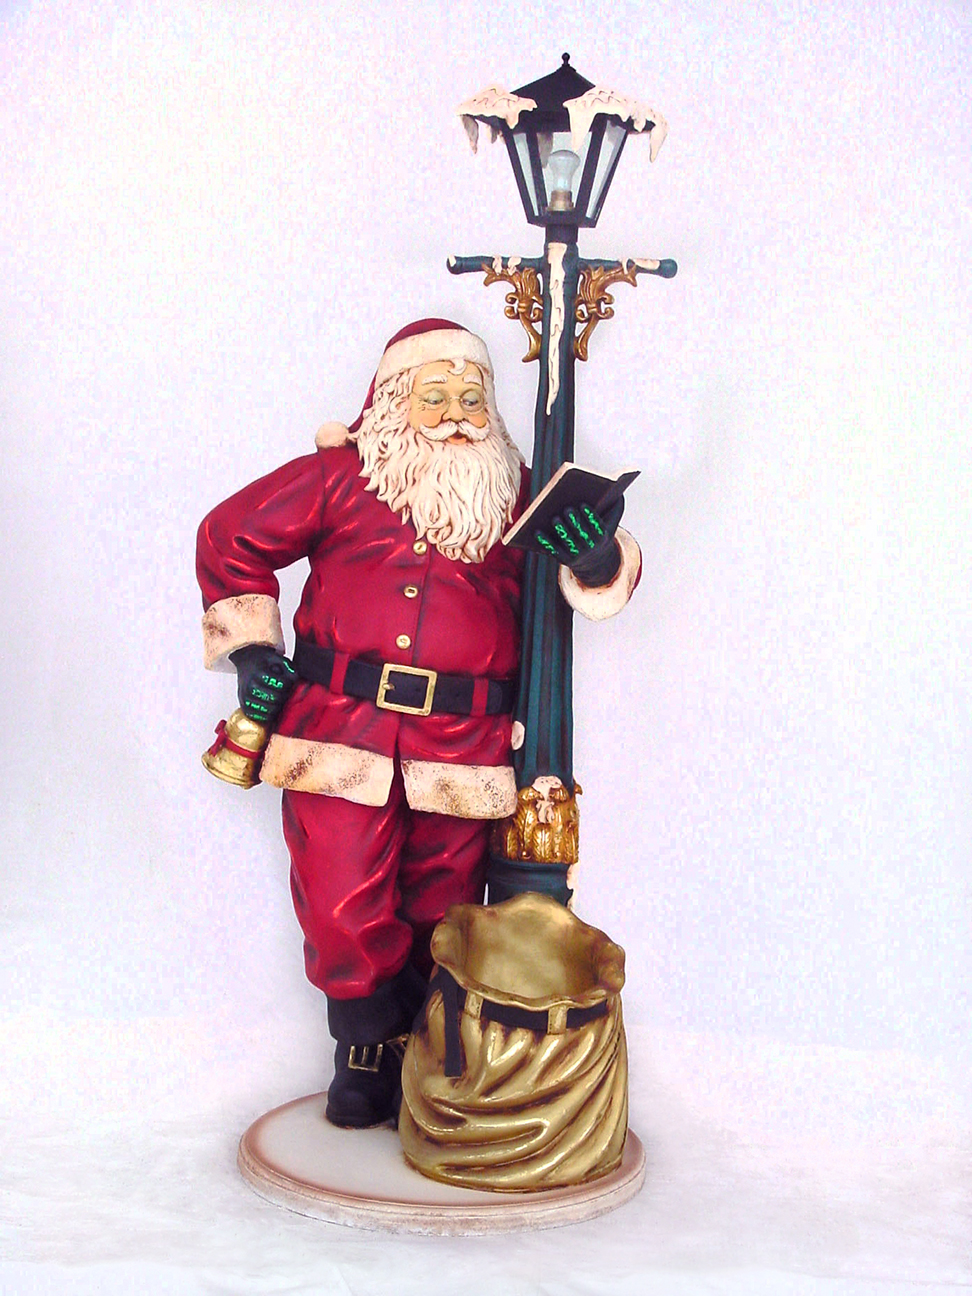 Santa claus with lamp post christmas decor life size 7ft for Santa decorations